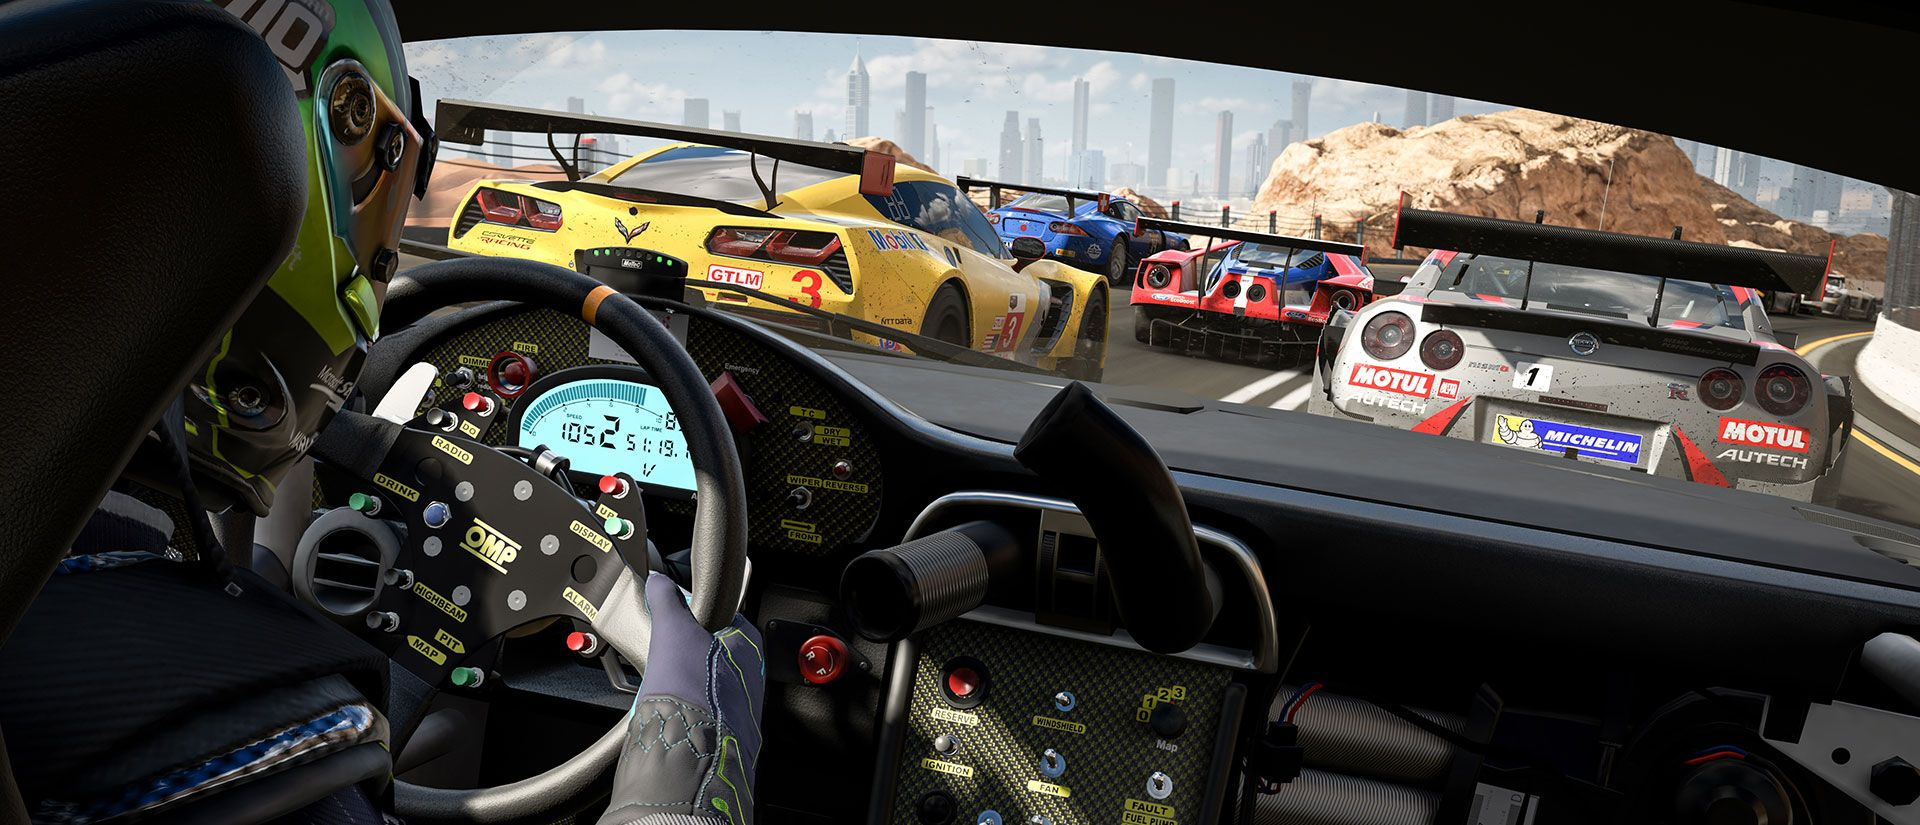 17 Coolest Car Racing Games for 2017   Best XBOX and PS4 Car Games forza 7 car list